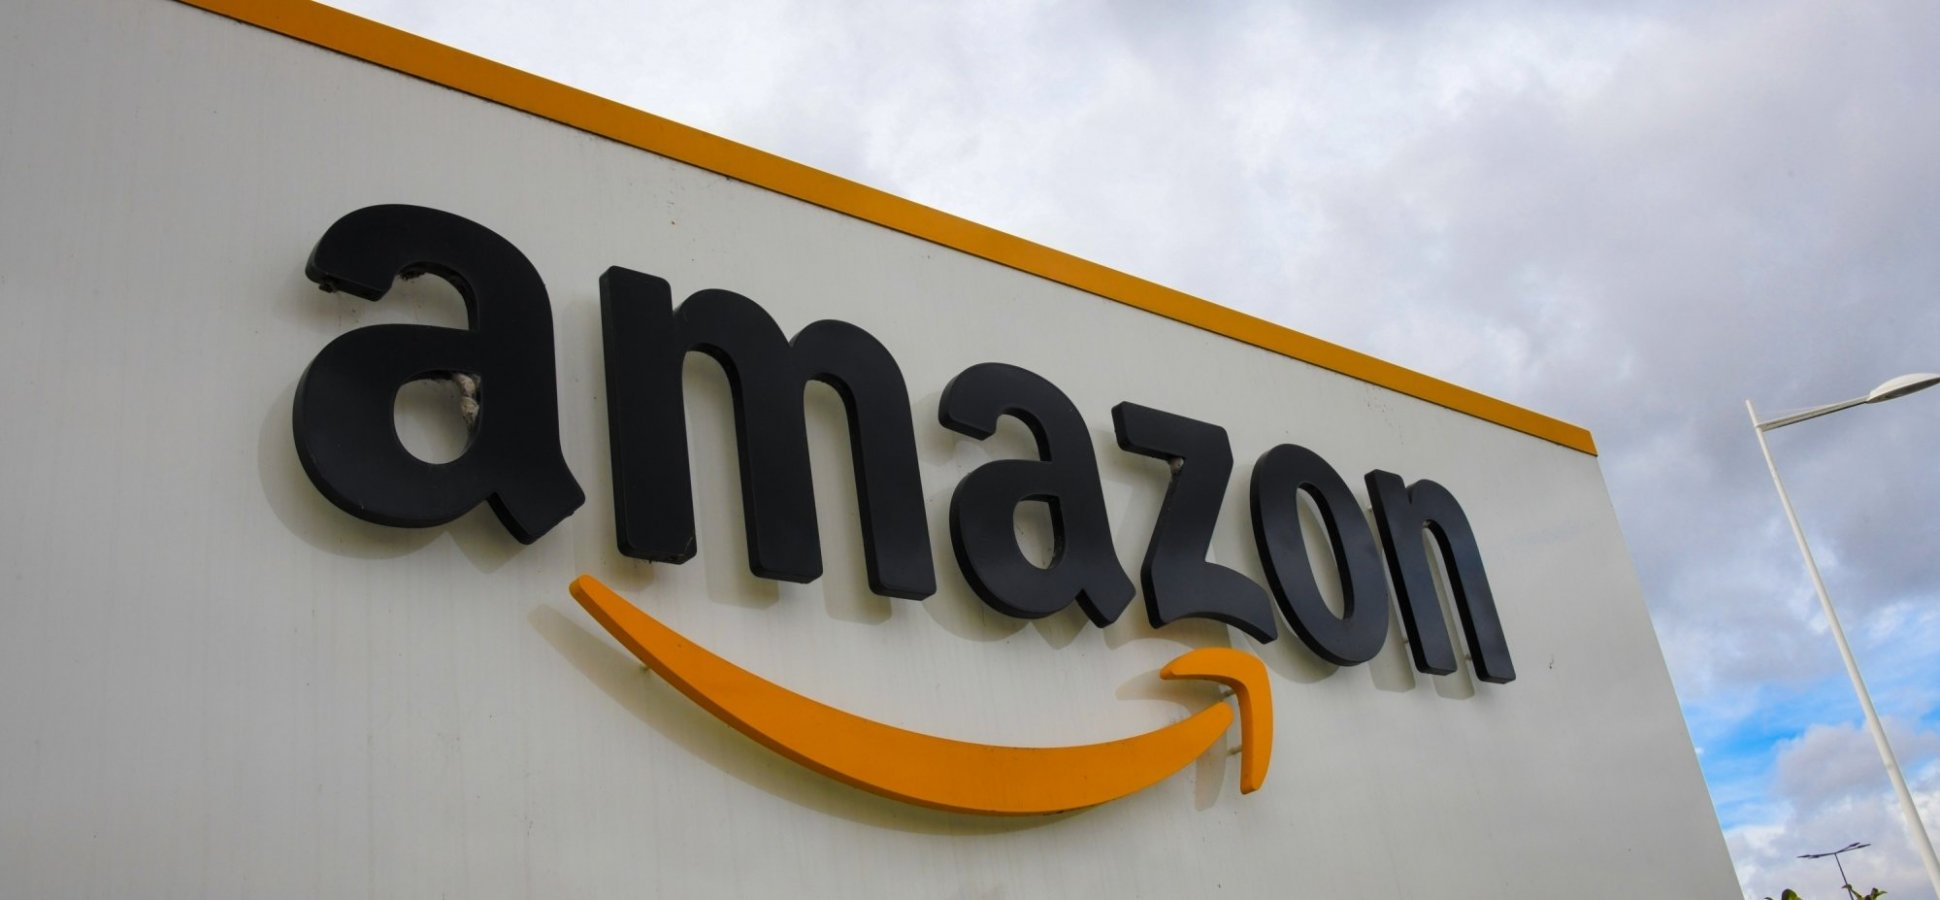 Amazon Posted a Job Ad That Truly Disturbed Many (and Should). Here's the Background